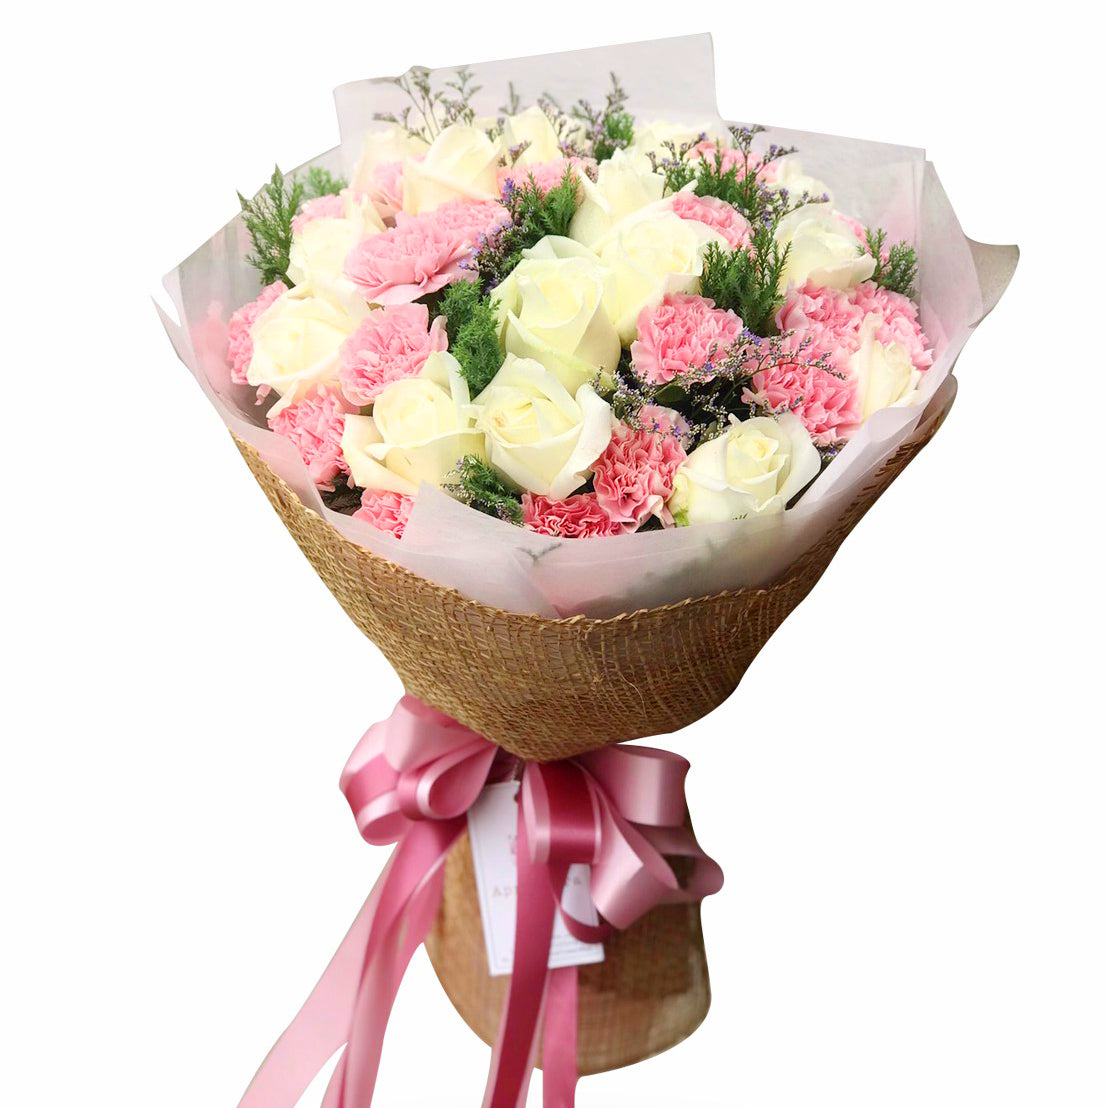 Girly Bouquet Of Roses, Carnation And Caspia